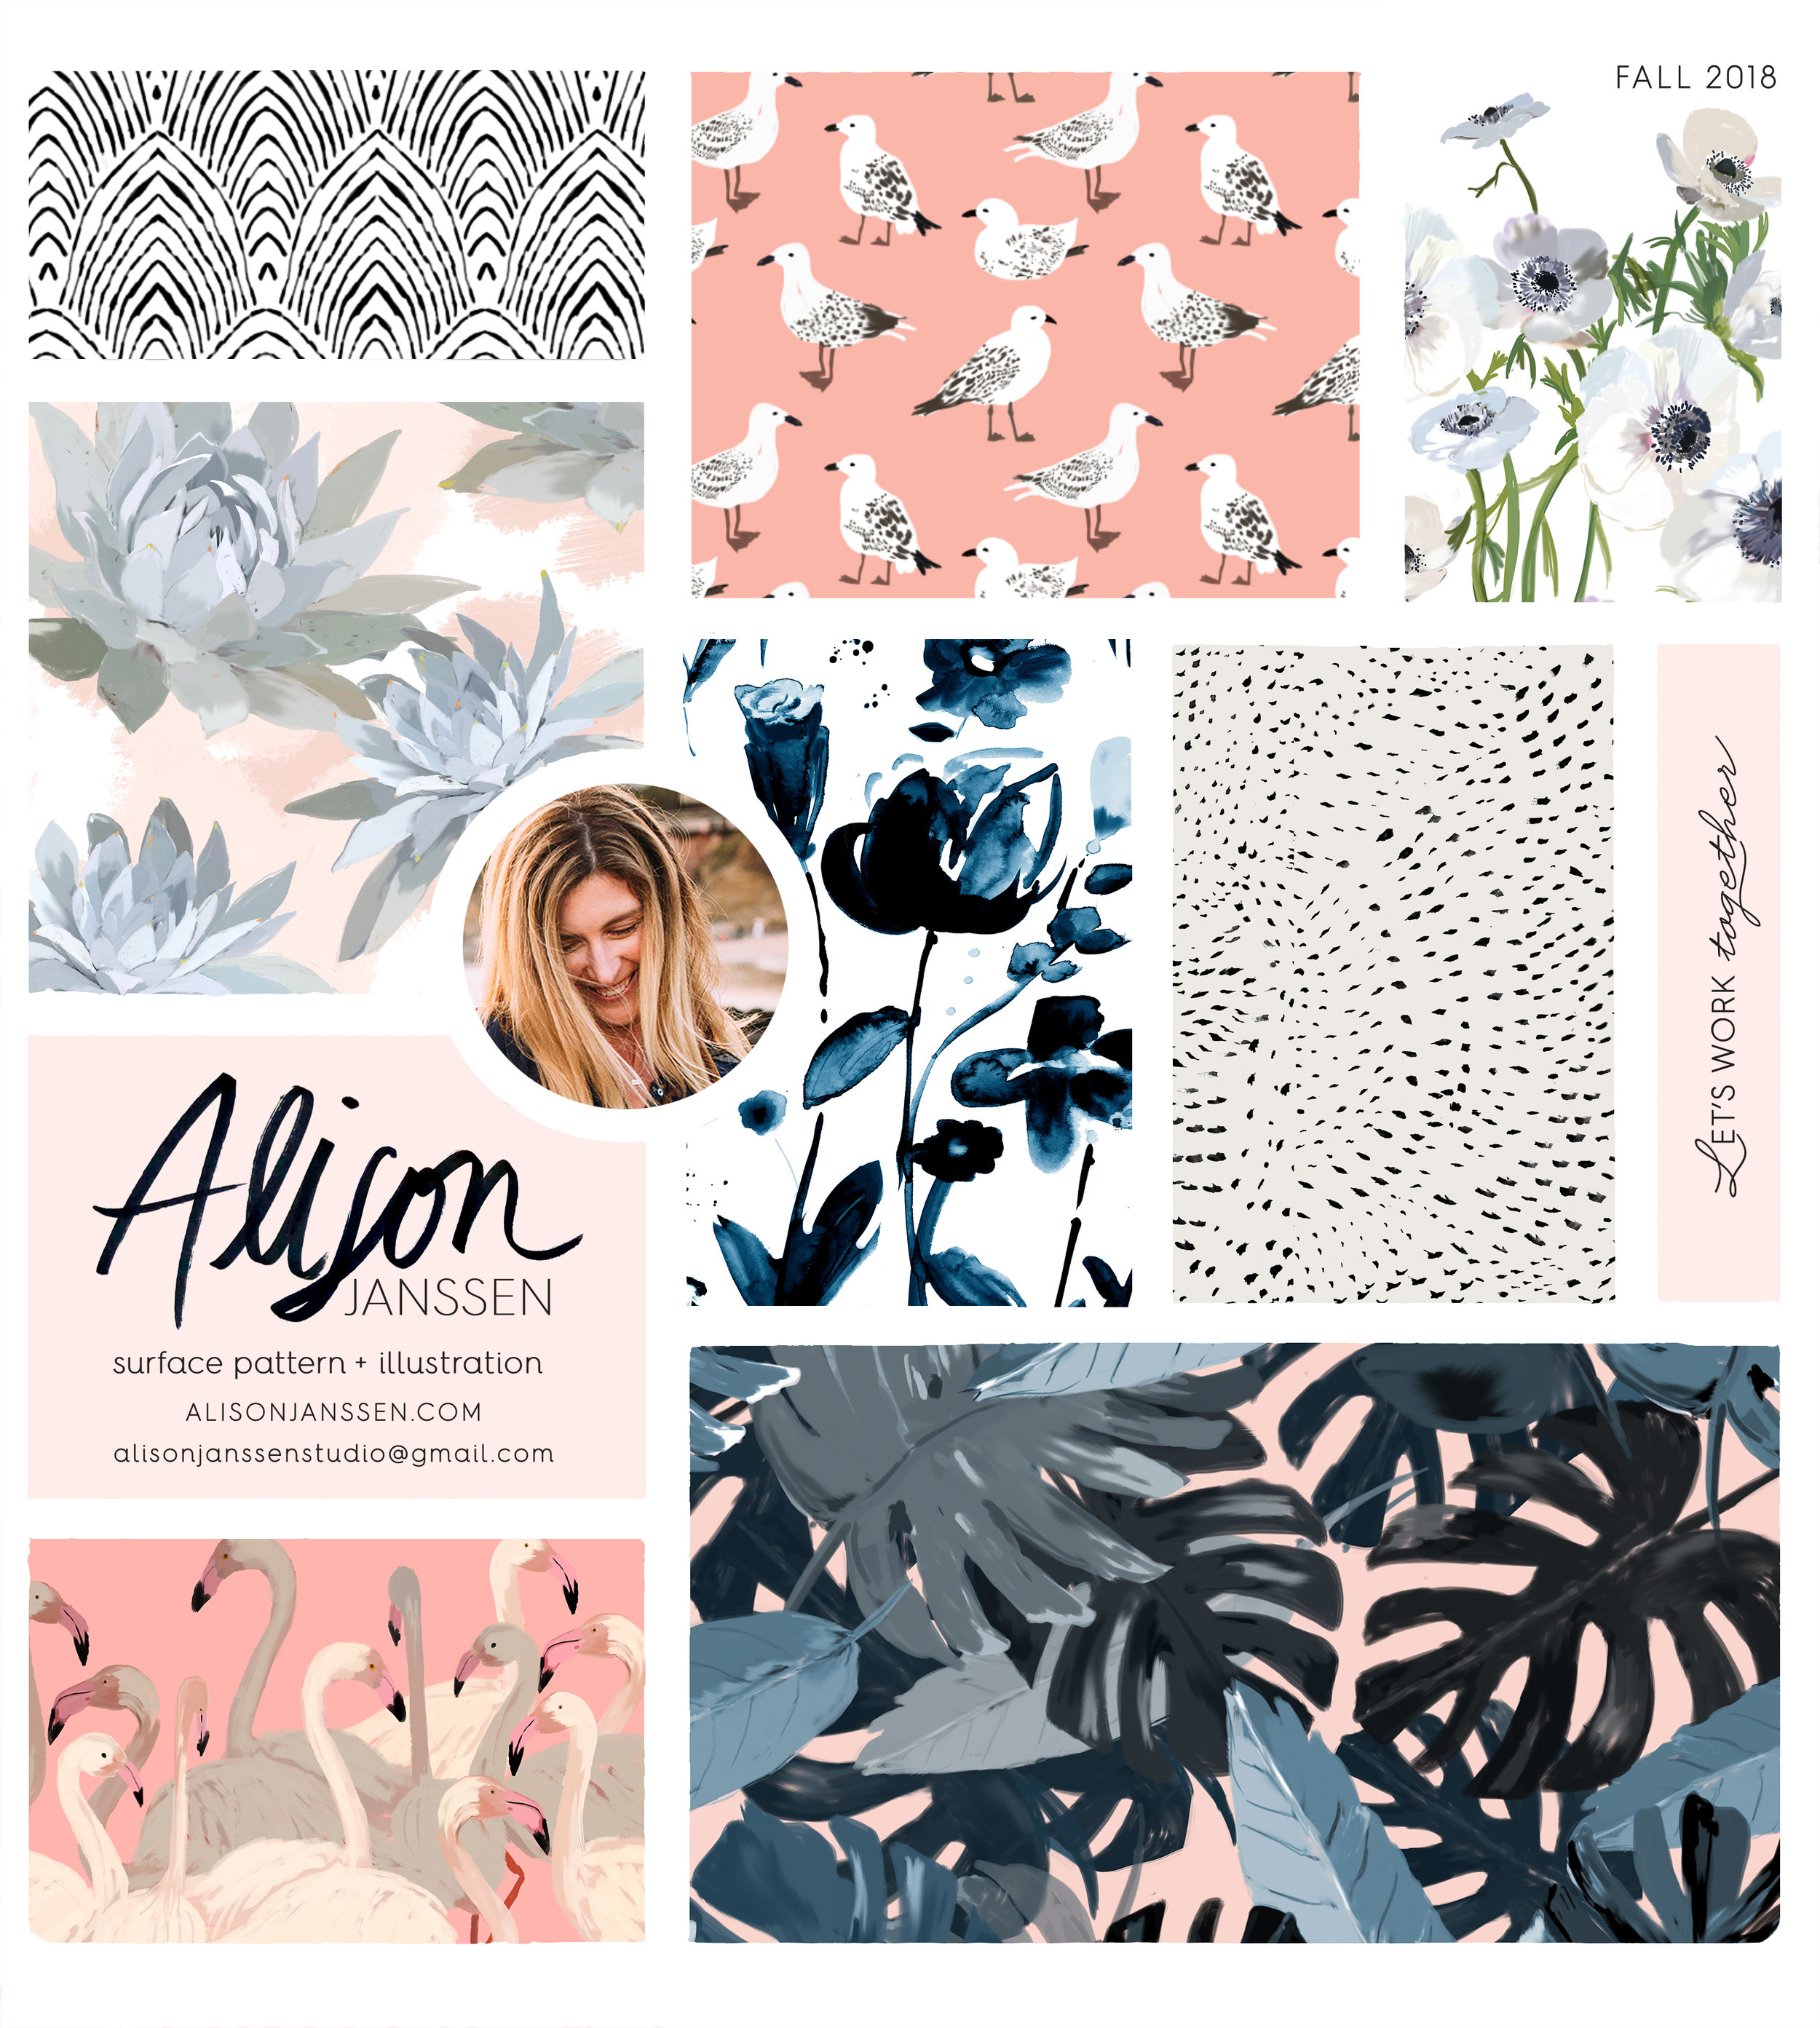 black & white mountain ,  seagulls , white anemone - coming soon…   blue agave ,  prairie watercolor ,  watercolor dots  ,  flamingo party ,  fall tropics